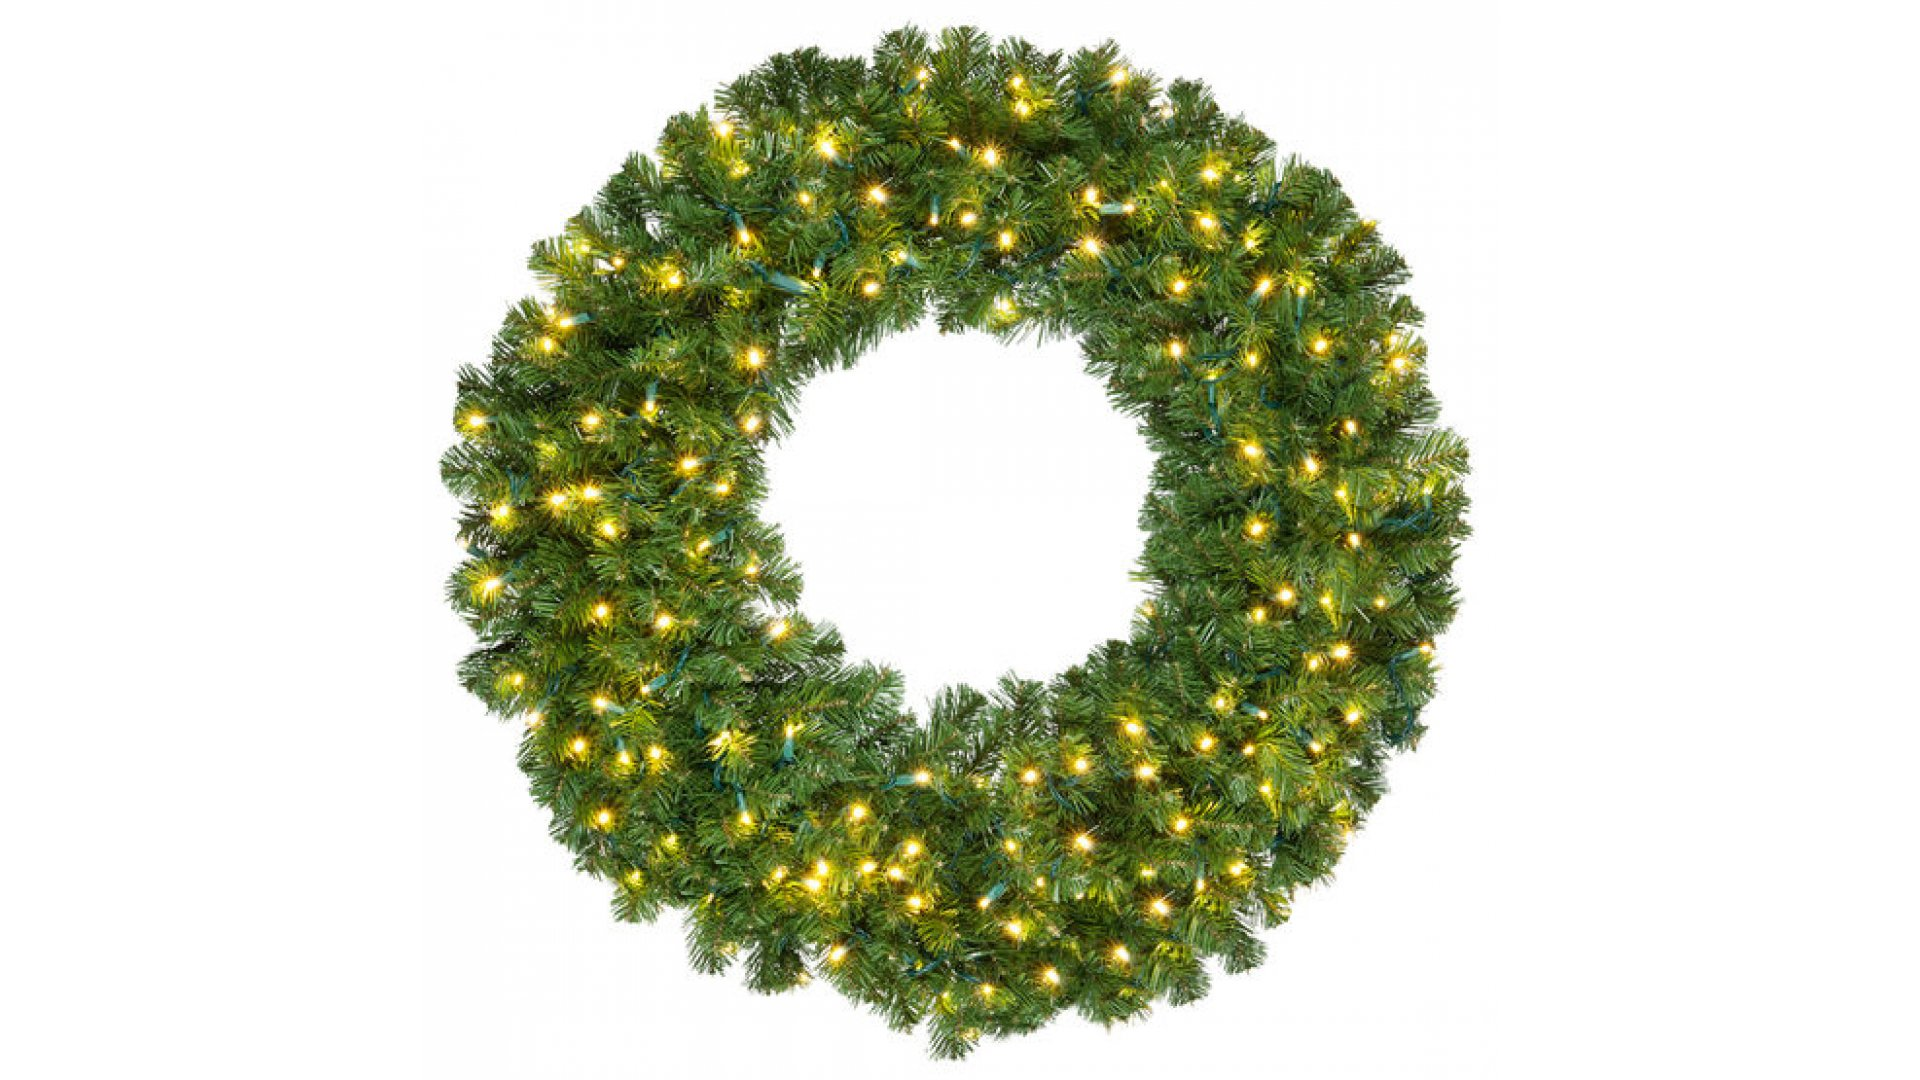 Prelit Christmas Wreath.Clp14190 36 Inch Led Commercial Grade Olympia Pine Prelit Christmas Wreath 150 Warm White Led Lights